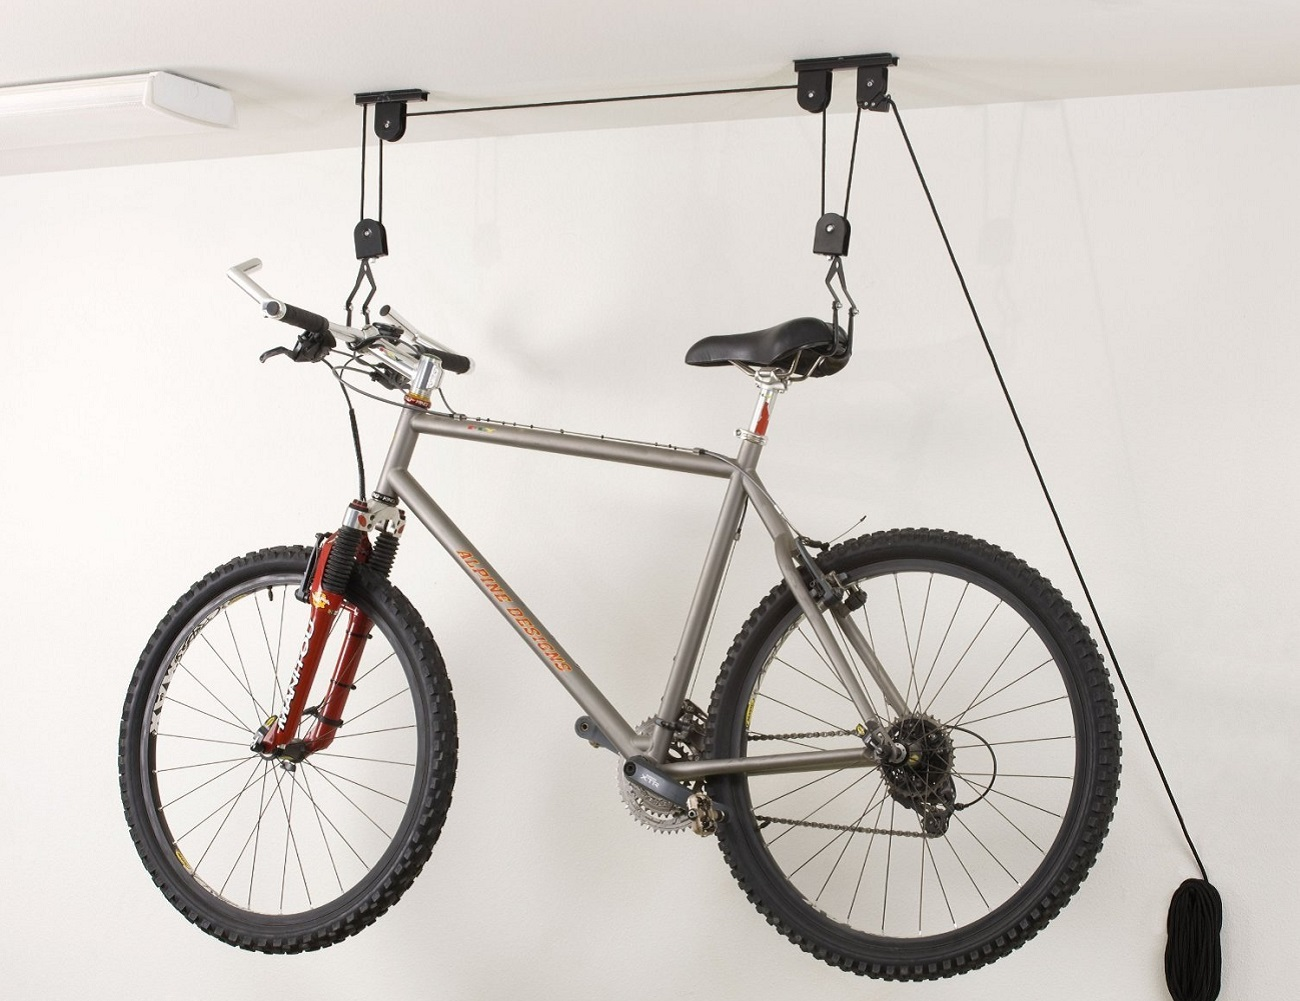 Ceiling-Mounted Bike Lift